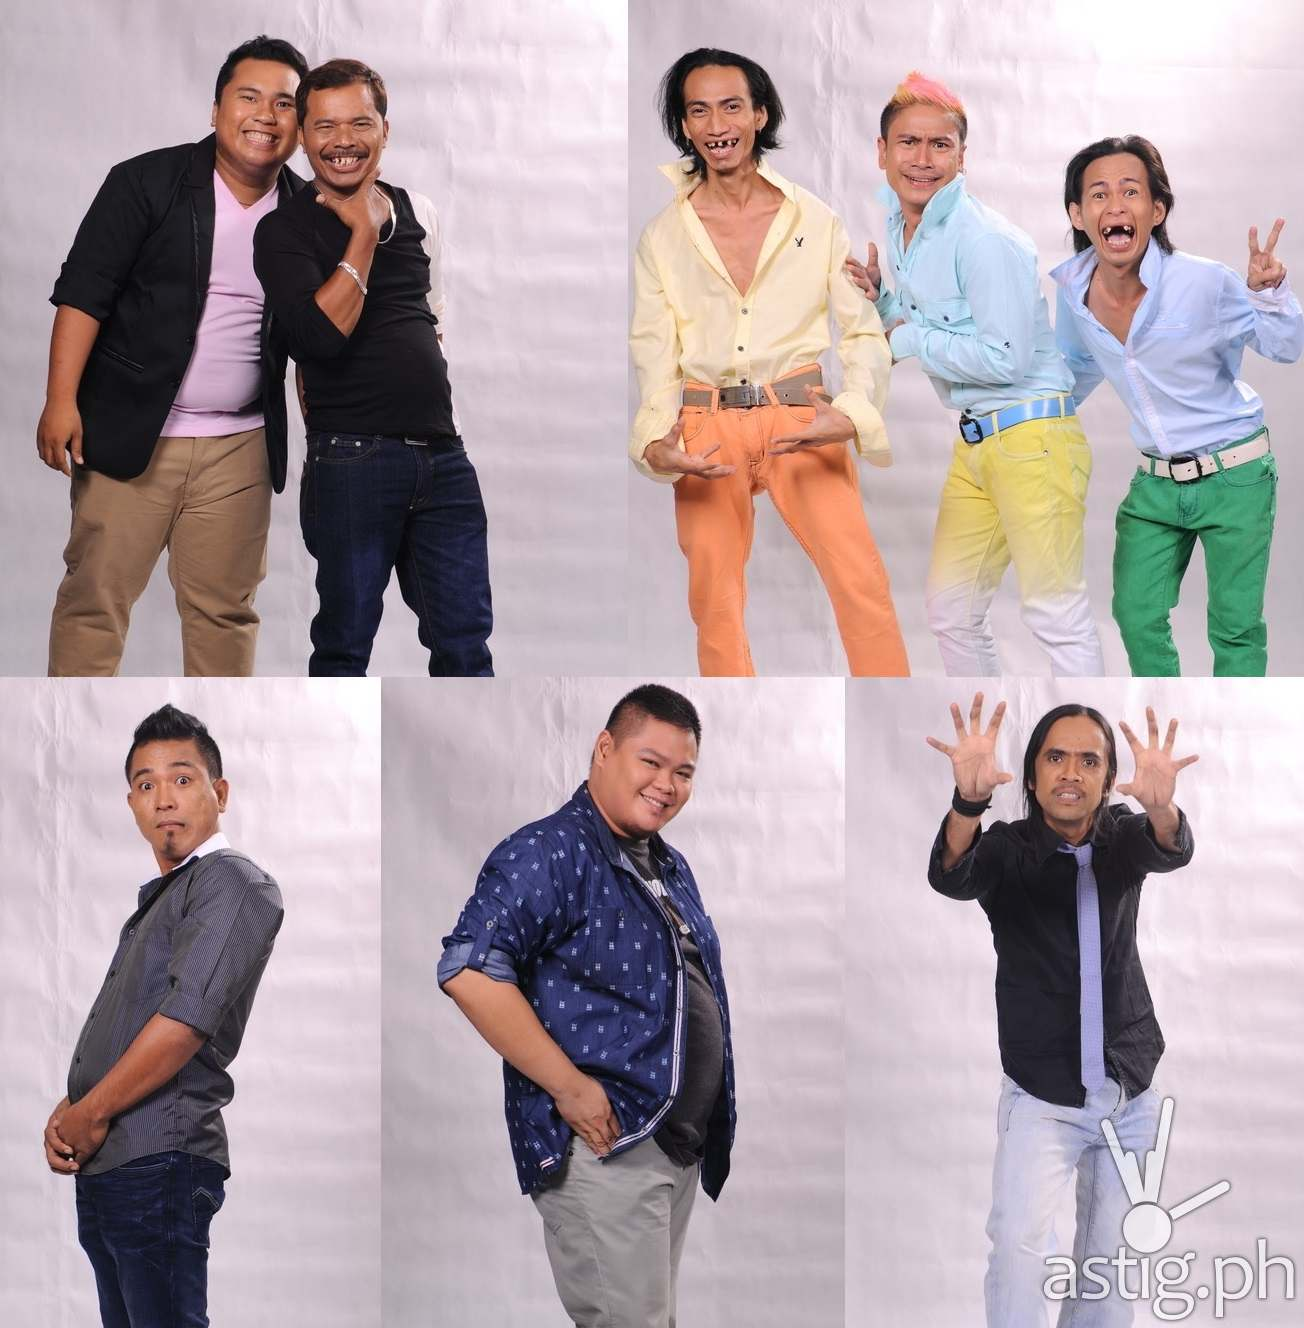 FUNNY ONE Final Five komikeros Crazy Duo, No Direction, Gibis Alejandrino, Nonong Ballinan, Ryan Rems Sarita